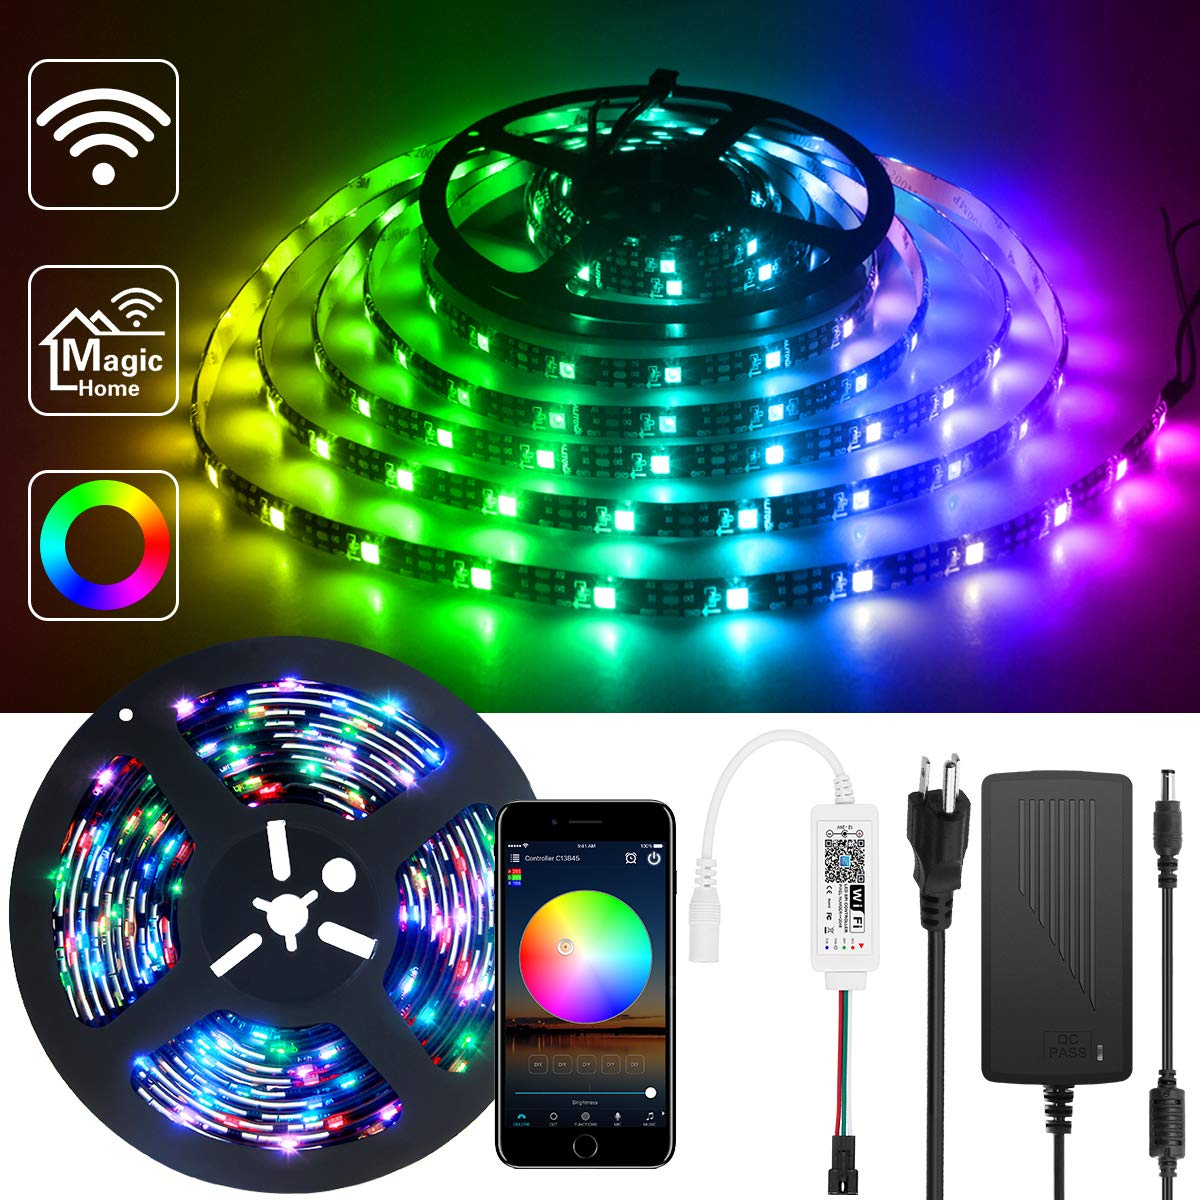 ALITOVE WiFi Smart RGB LED Strip Lights with App, Compatible with Alexa Google Home, 16.4ft 150 LEDs Addressable Dream Color Music Sync Voice Control LED Strip with WiFi Controller and Power Supply